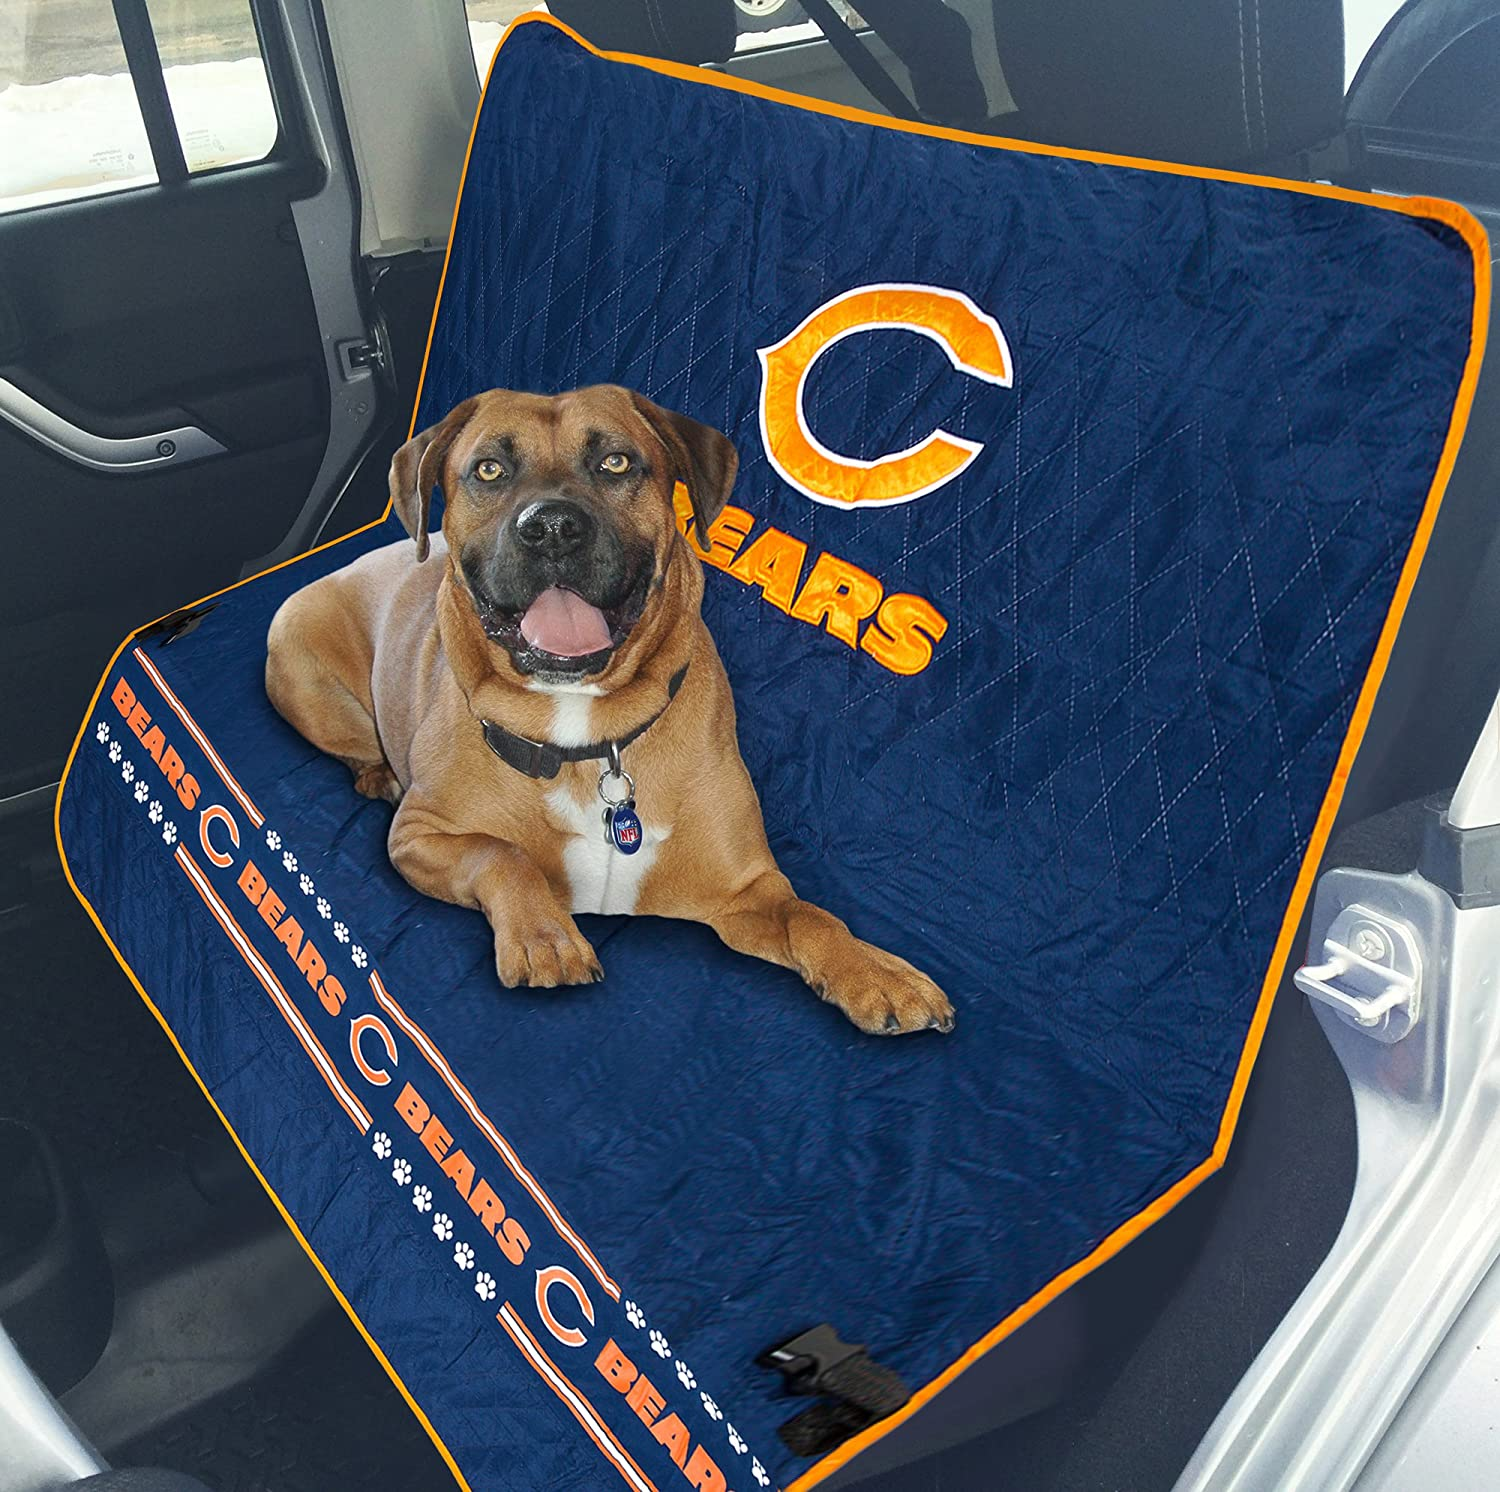 NFL CAR SEAT COVER - CHICAGO BEARS Waterproof, Non-slip BEST Football LICENSED PET SEAT cover for DOGS & CATS.